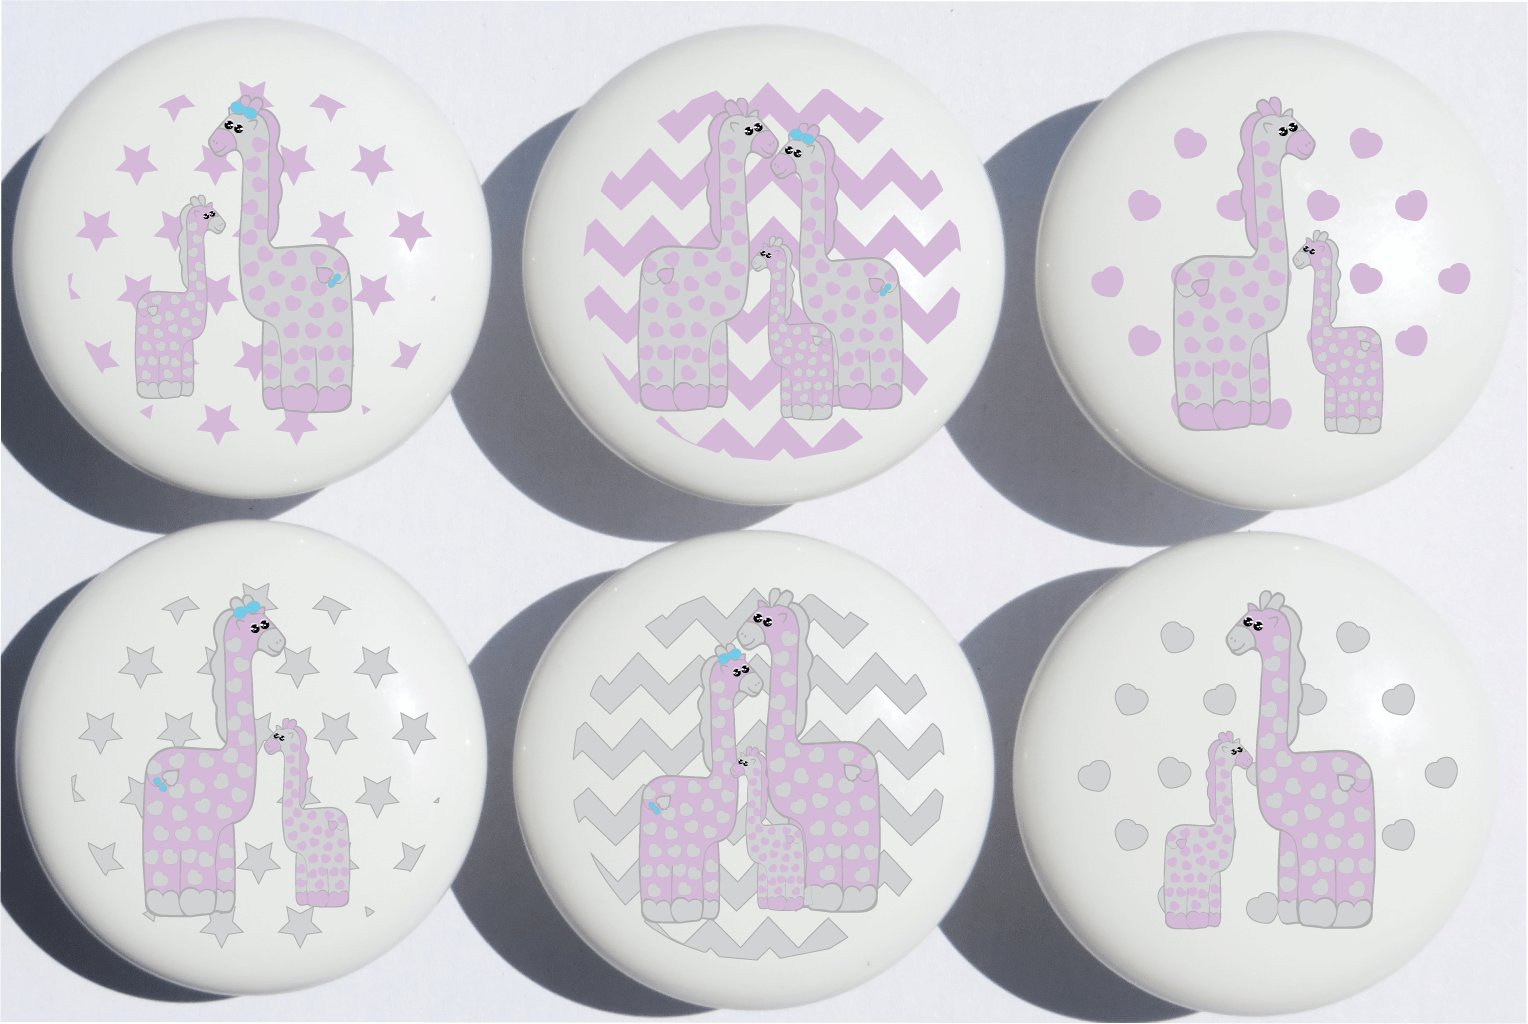 Purple Giraffe Drawer Pulls/Safari Ceramic Cabinet Drawer Knobs/Giraffe Nursery Decor/Set of 6 (Purple Giraffe)